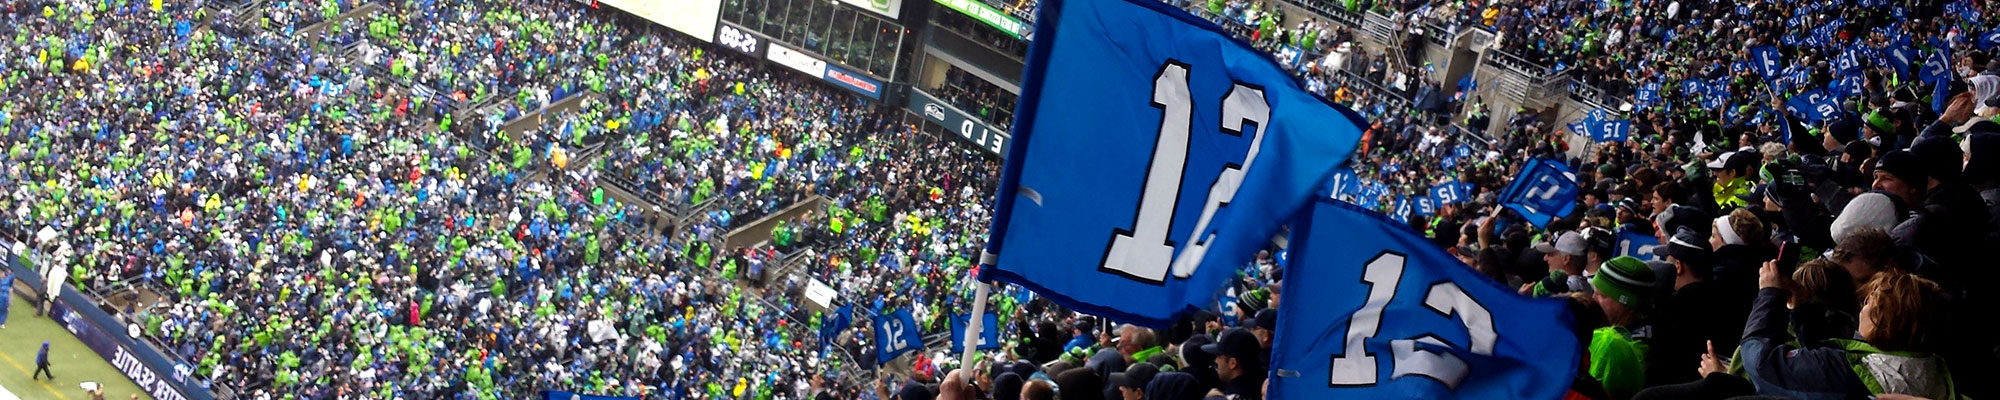 Seahawks fans wave 12 flags by BDA